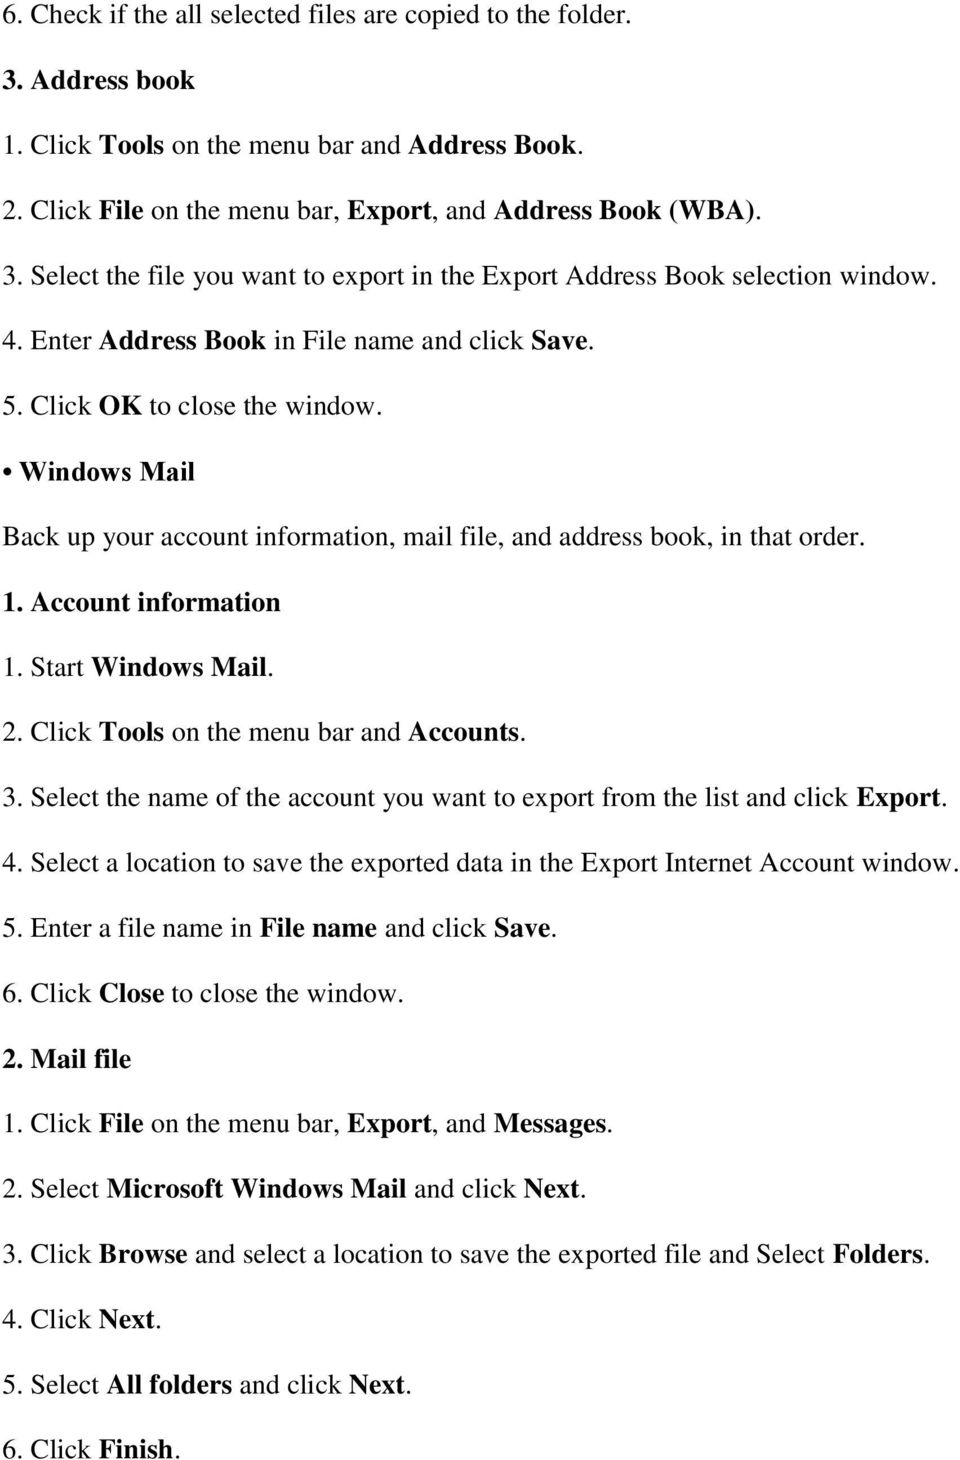 Start Windows Mail. 2. Click Tools on the menu bar and Accounts. 3. Select the name of the account you want to export from the list and click Export. 4.